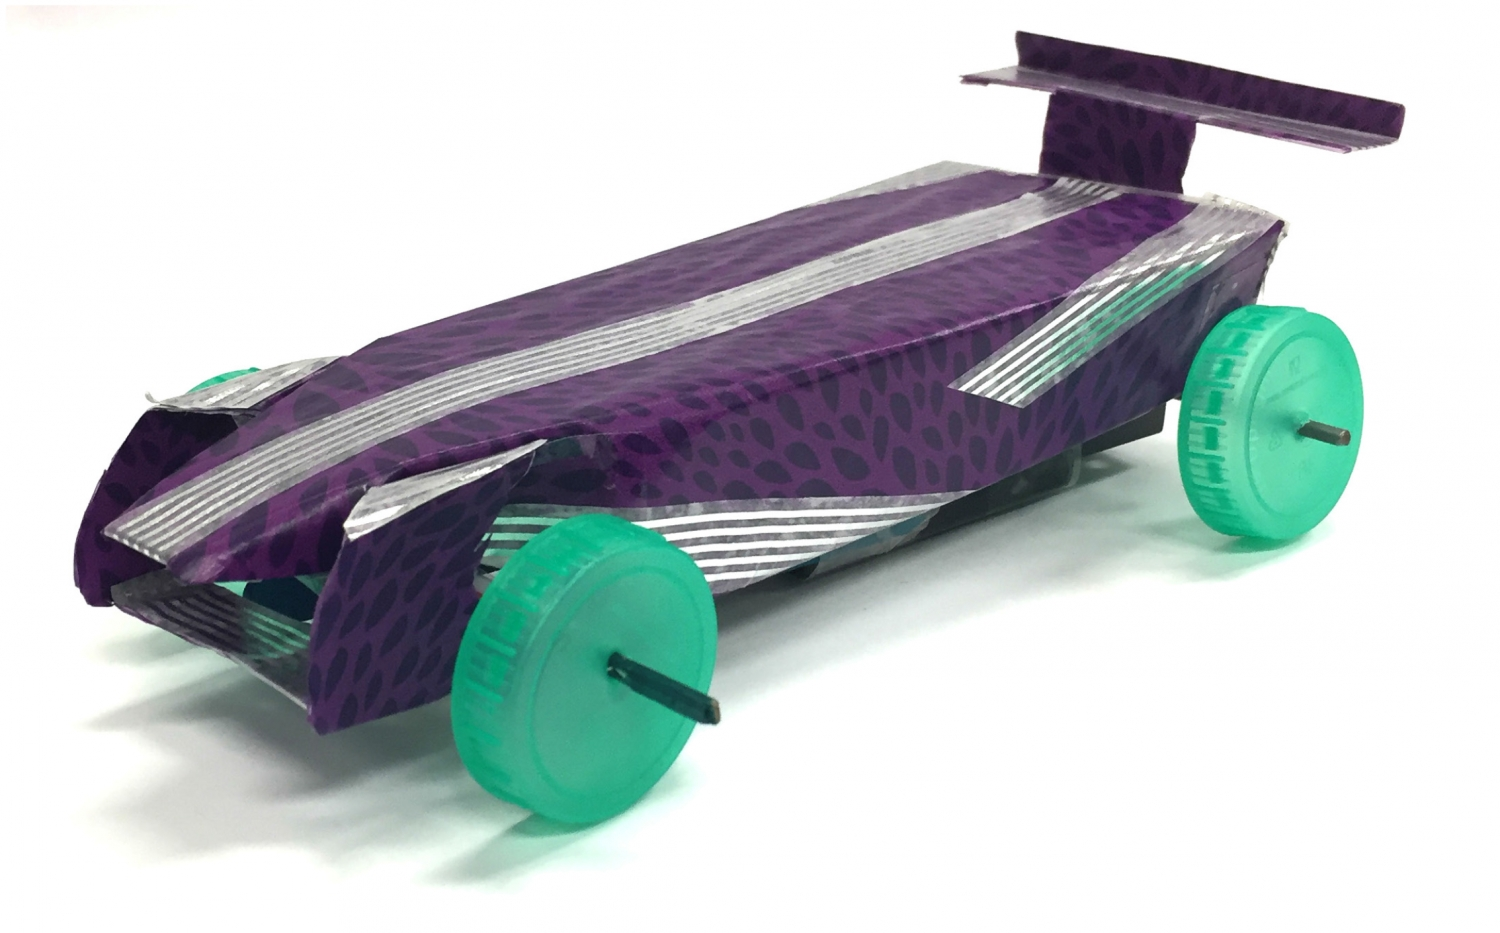 Home Made Electric Model Car - By Jaguar Land Rover Engineers